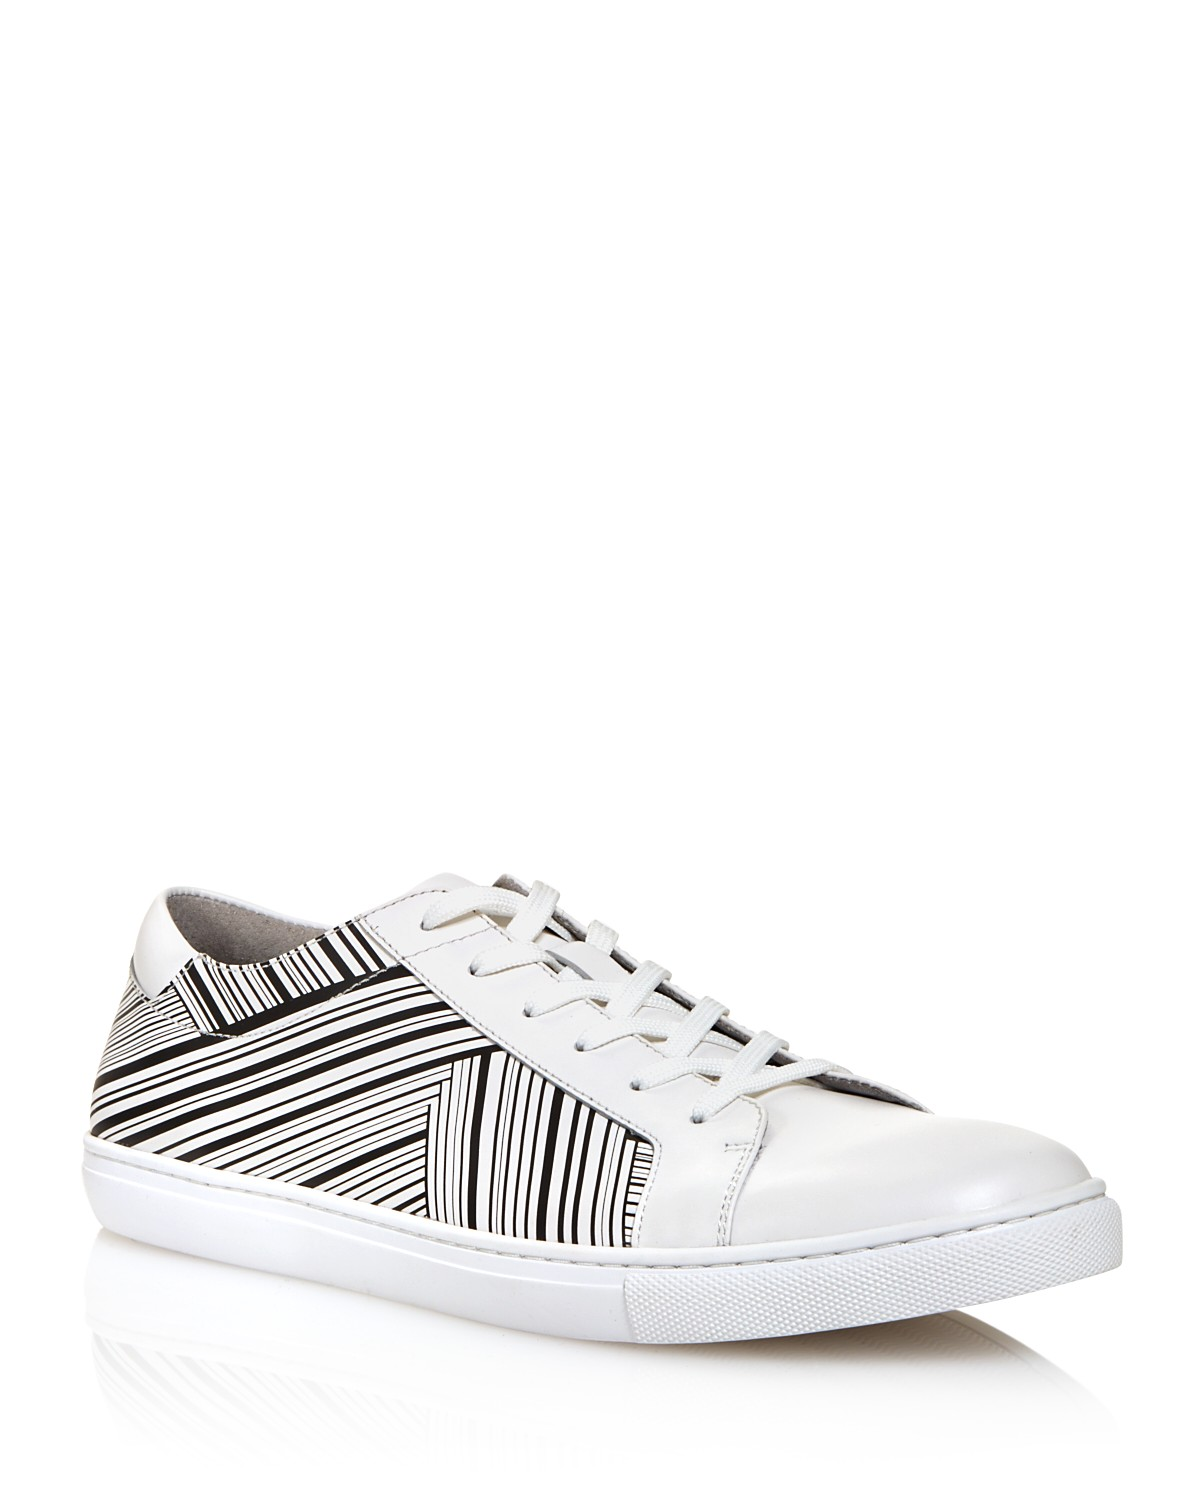 Kenneth Cole Men's Kam Stripes Low Top Sneakers - 100% Exclusive AwF1O